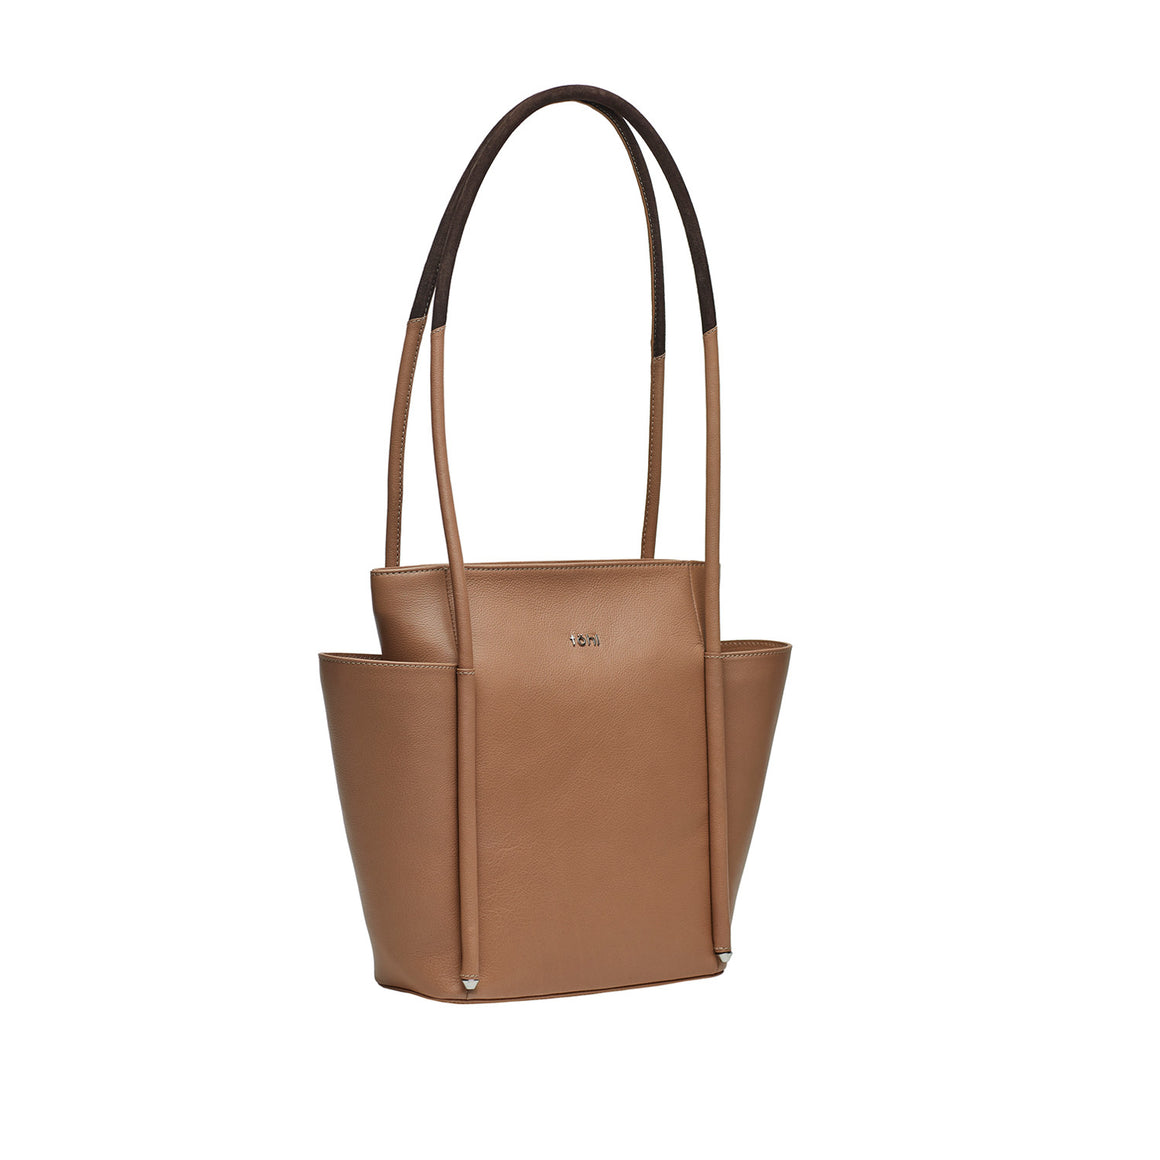 SB 0020 - TOHL PERRY WOMEN'S SHOPPER - NUDE